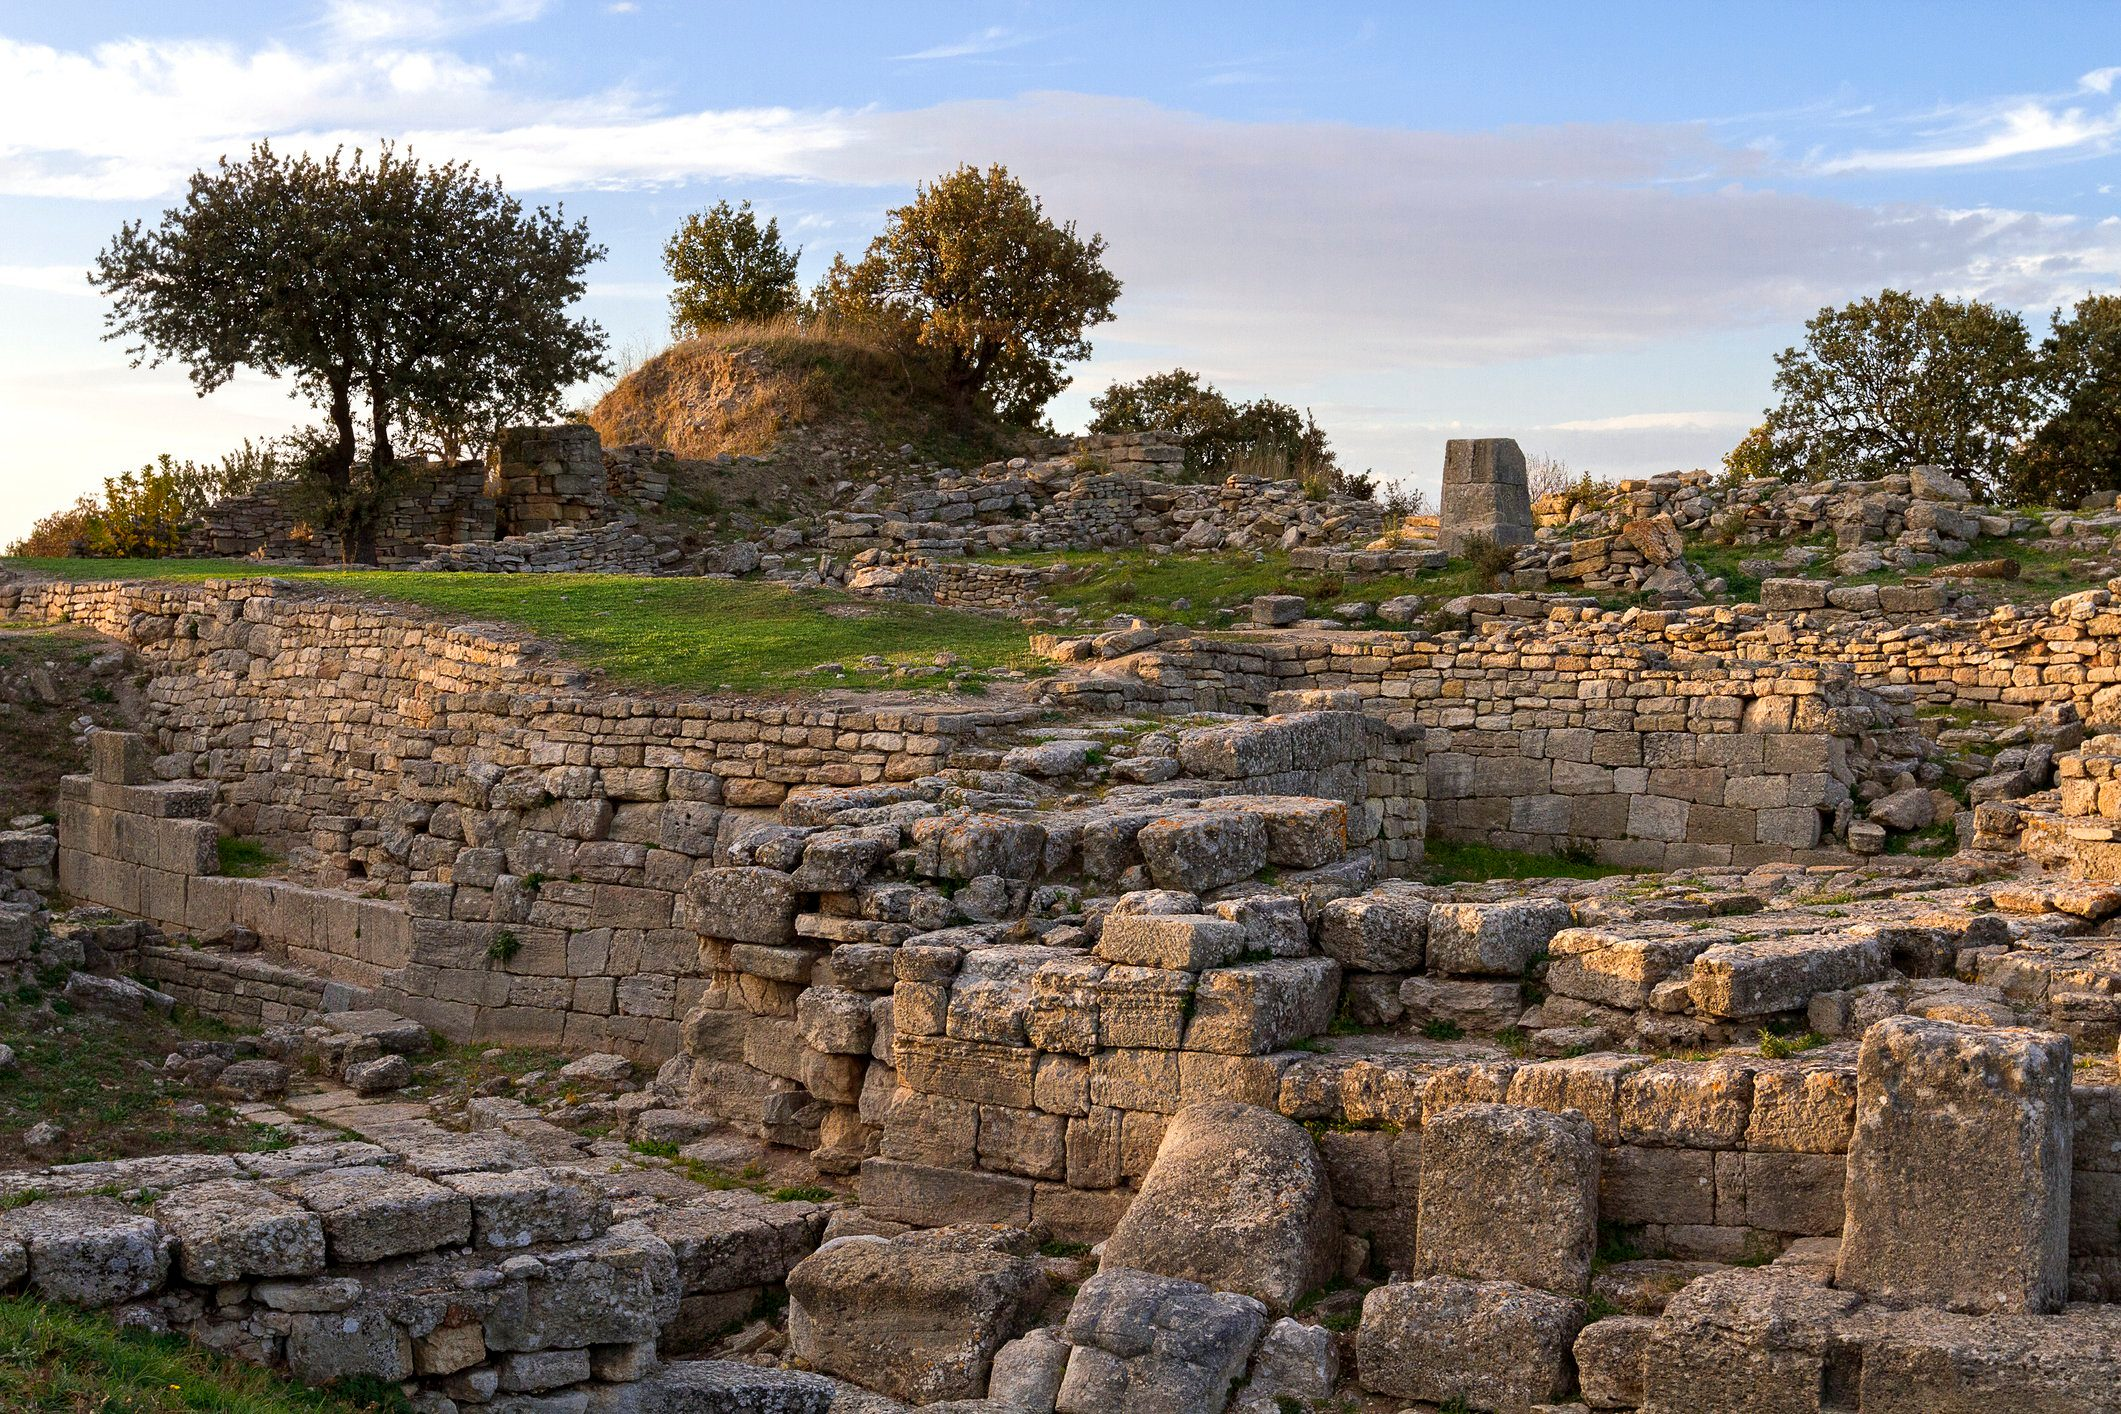 Ruins of the ancient city of Troy, Canakkale, Turkey